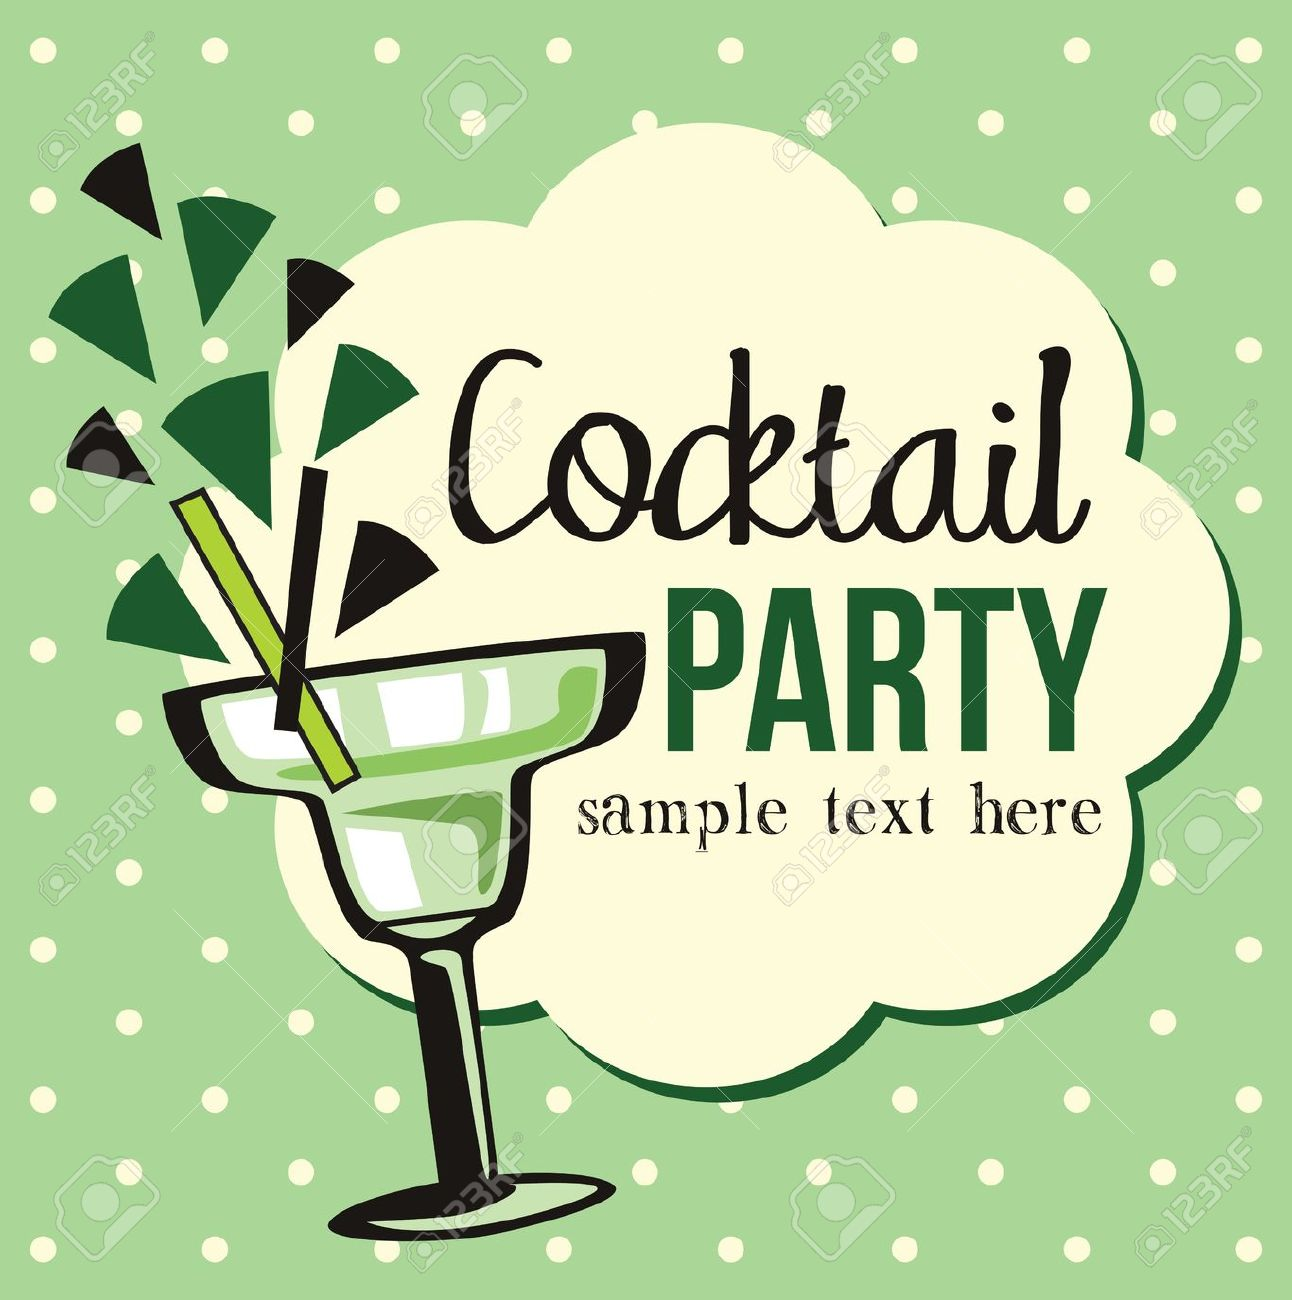 Vintage cocktail party clipart clip art black and white Holiday Party Clip Art | Free download best Holiday Party ... clip art black and white